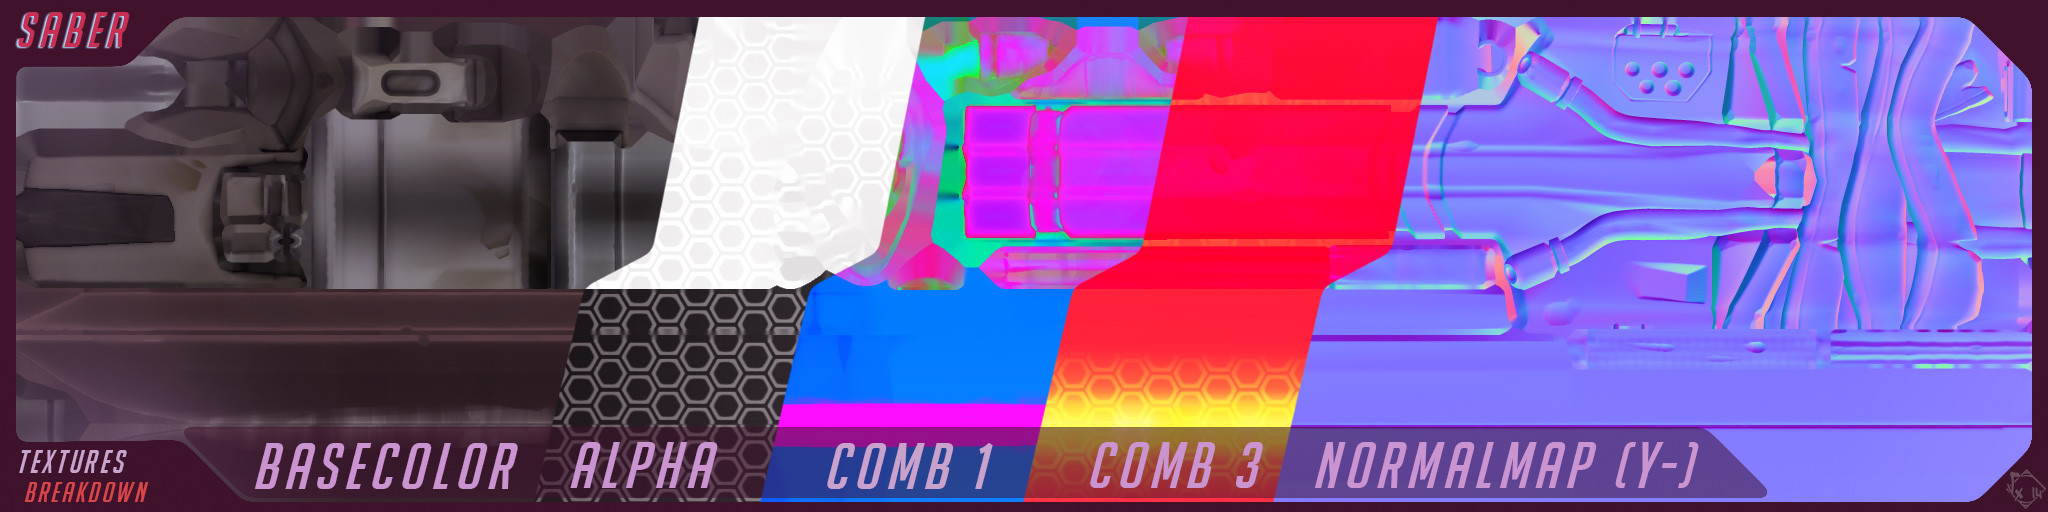 Comb 1 (R=Metal/G=Rough/B=AO) Comb 3 (R=Cavity/G=Emissive/B=SpecularIntensity), Alpha is stored in the BaseColor Map, 2048x512  textures set